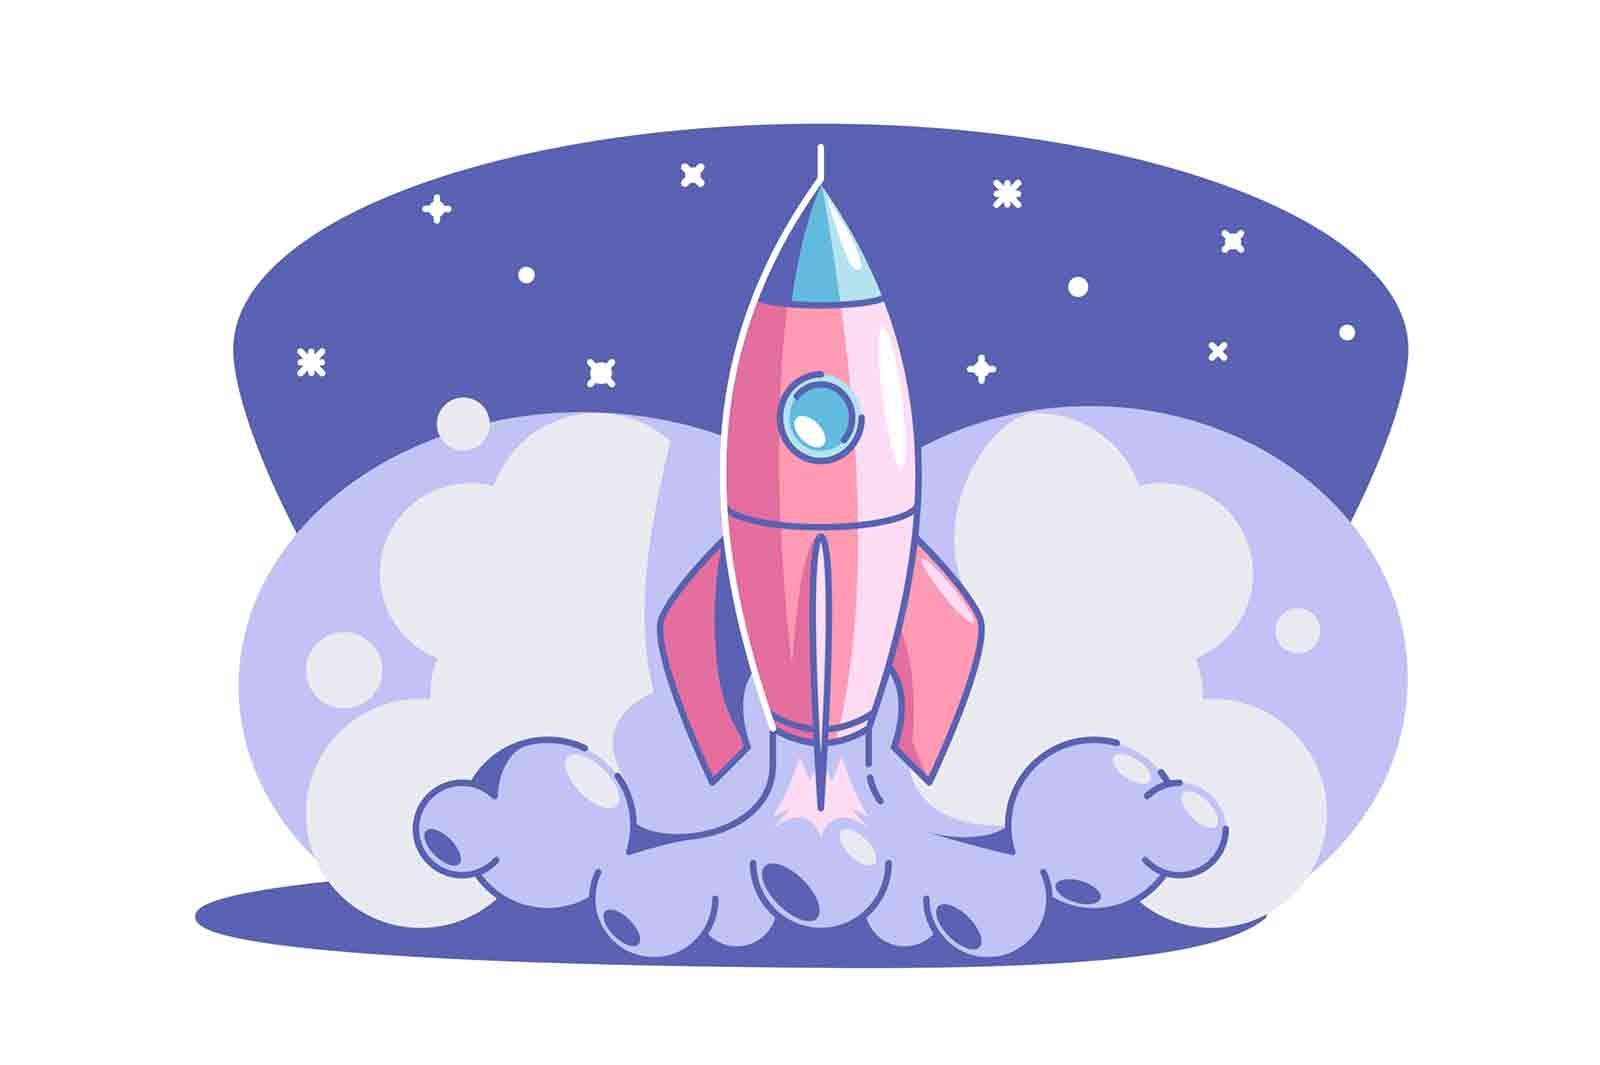 Start up rocket vector illustration. Rocket launch flat style. Business creativity and achievement. Success and goal. New creative idea.